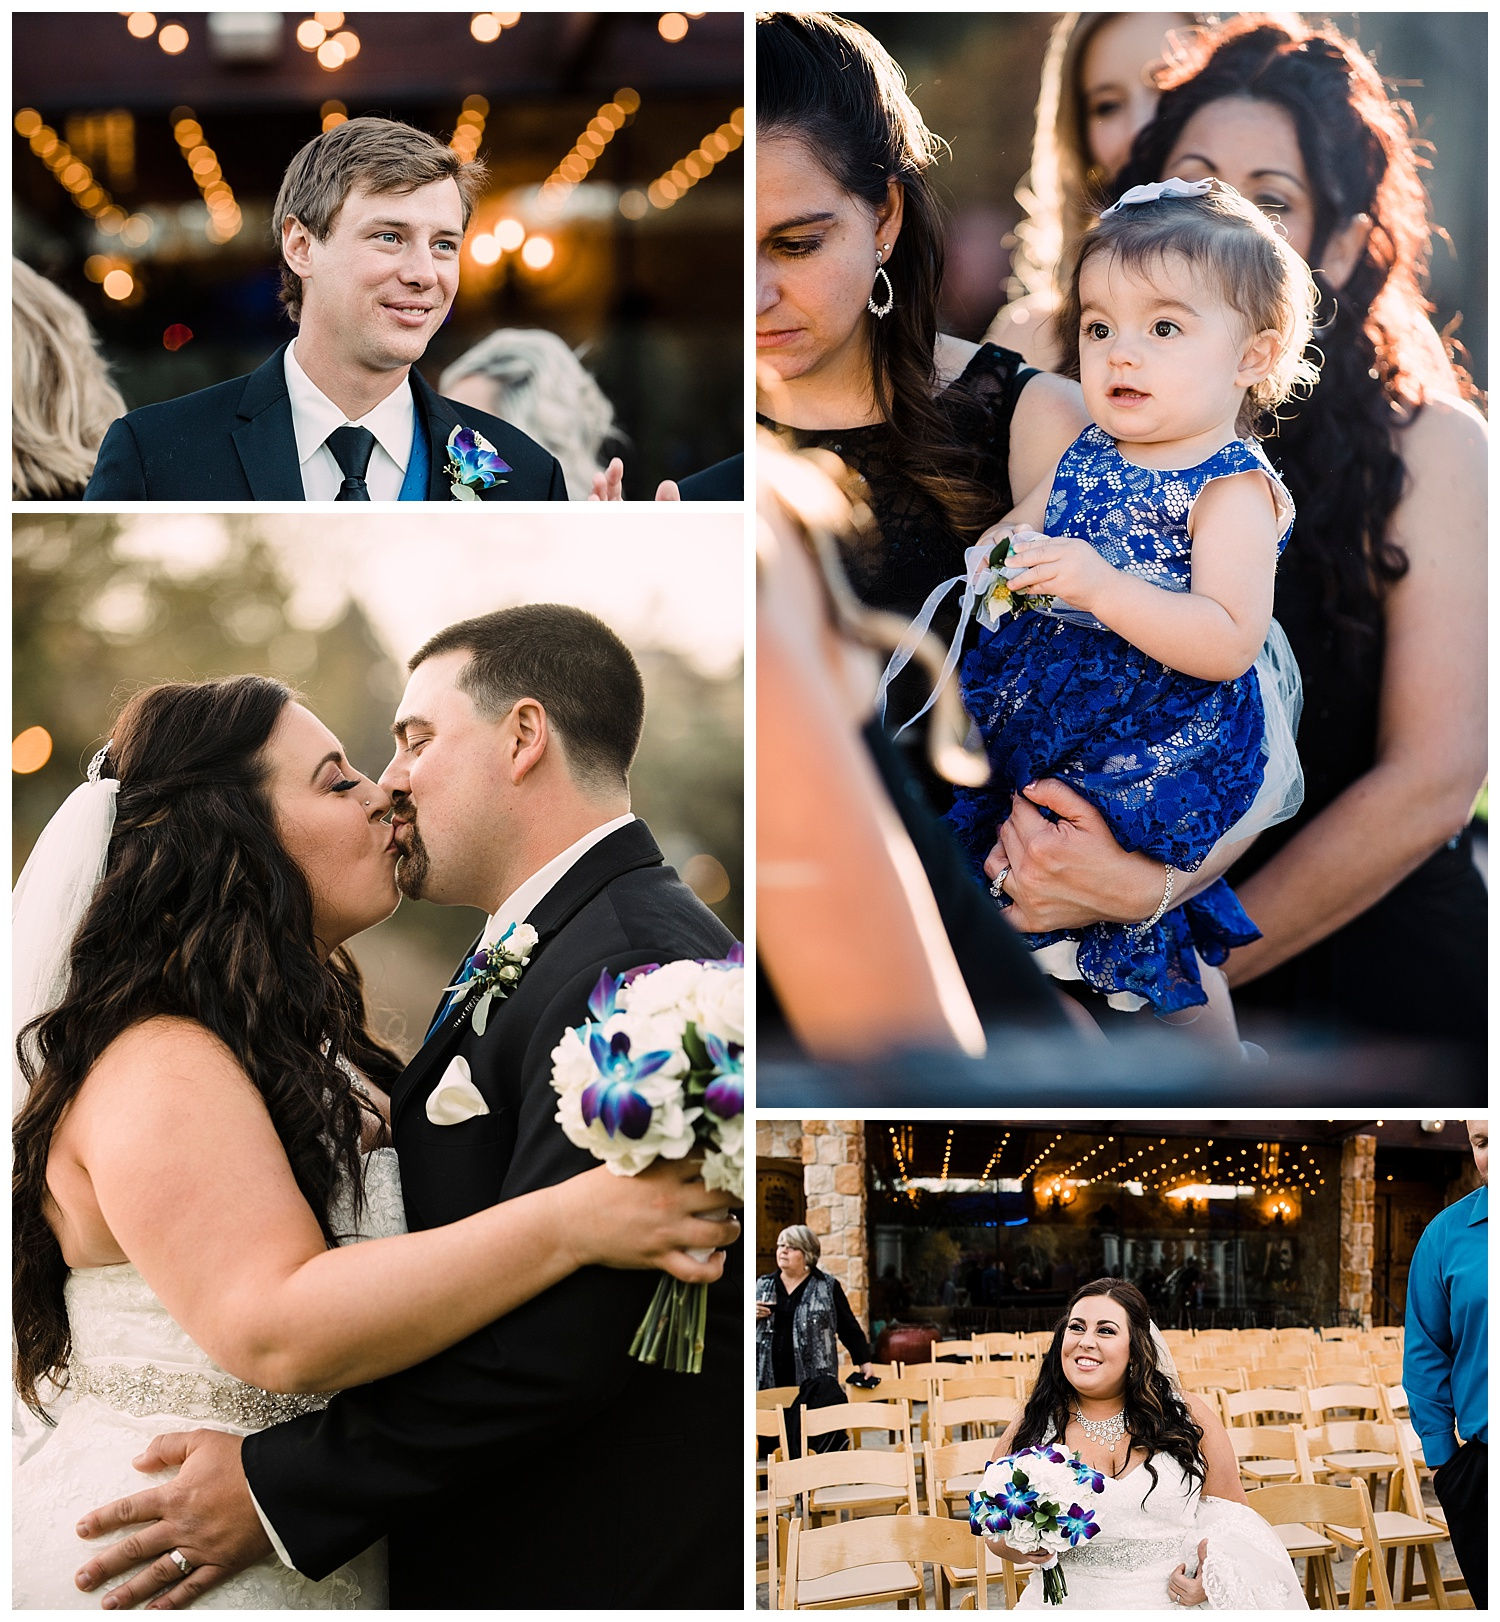 Colorado_Wedding_Photographer_Apollo_Fields_Weddings_Photography_016.jpg